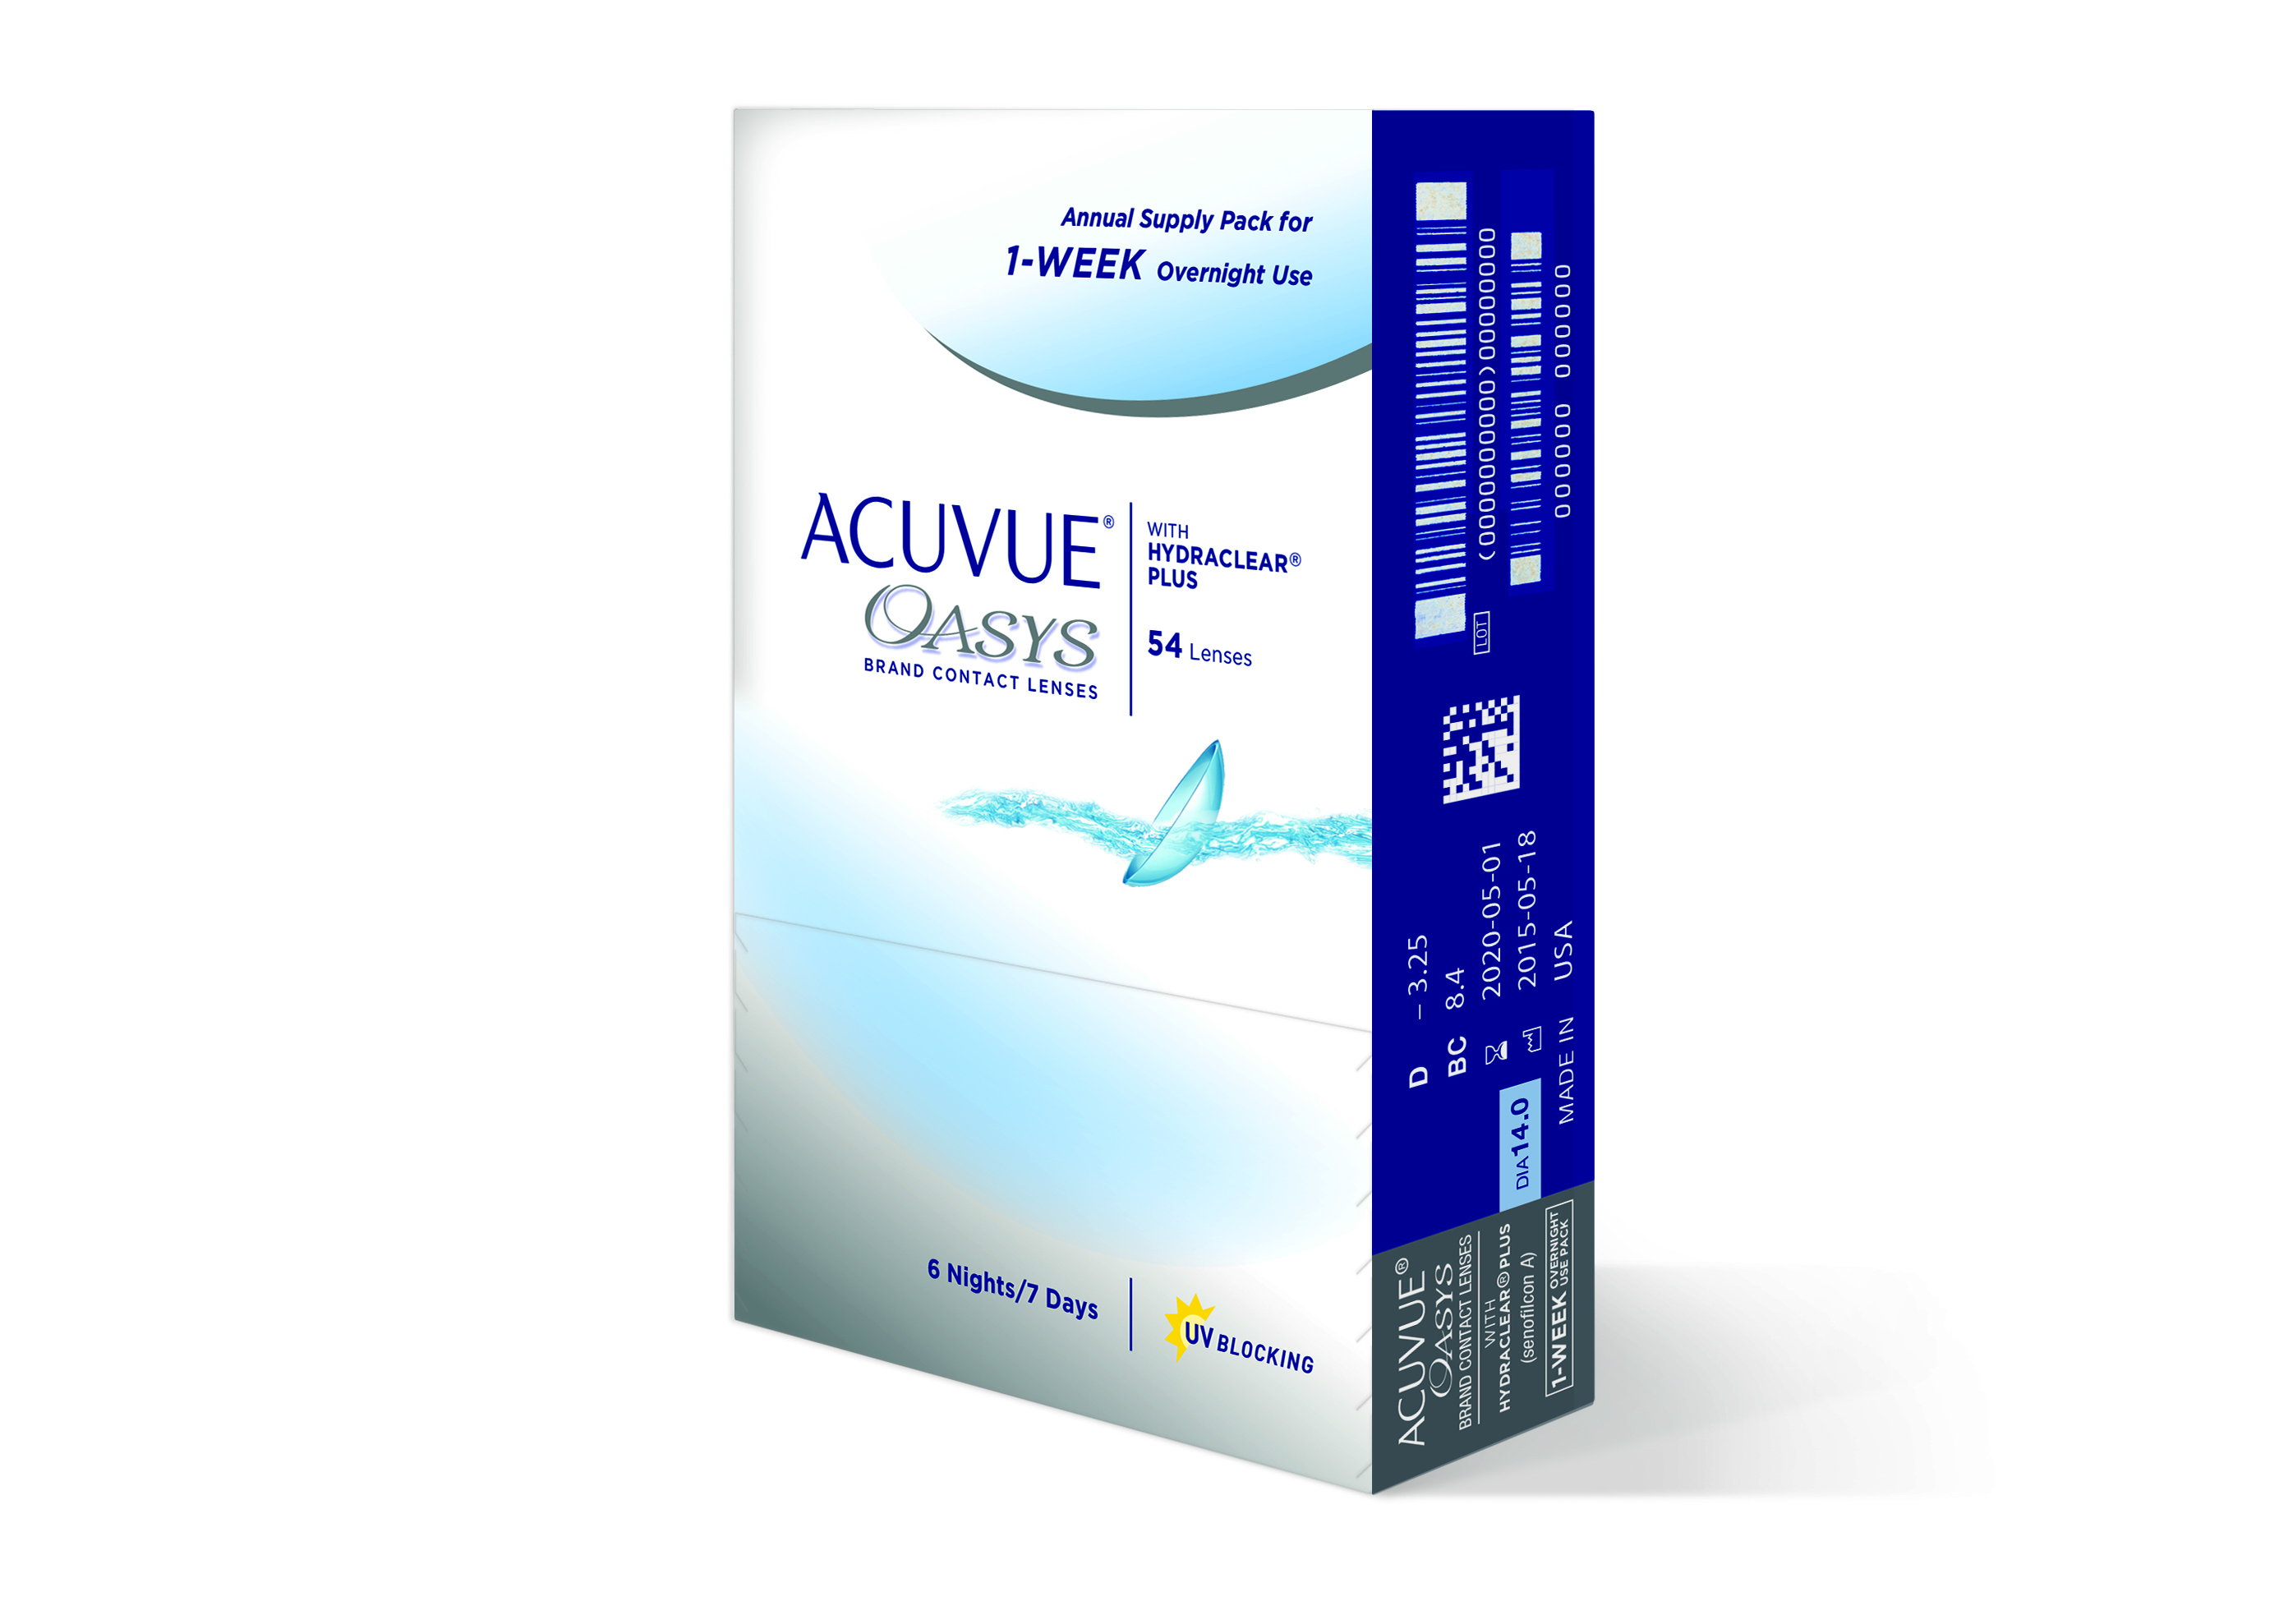 Acuvue Oasys® Brand Contact Lenses for Extended Wear